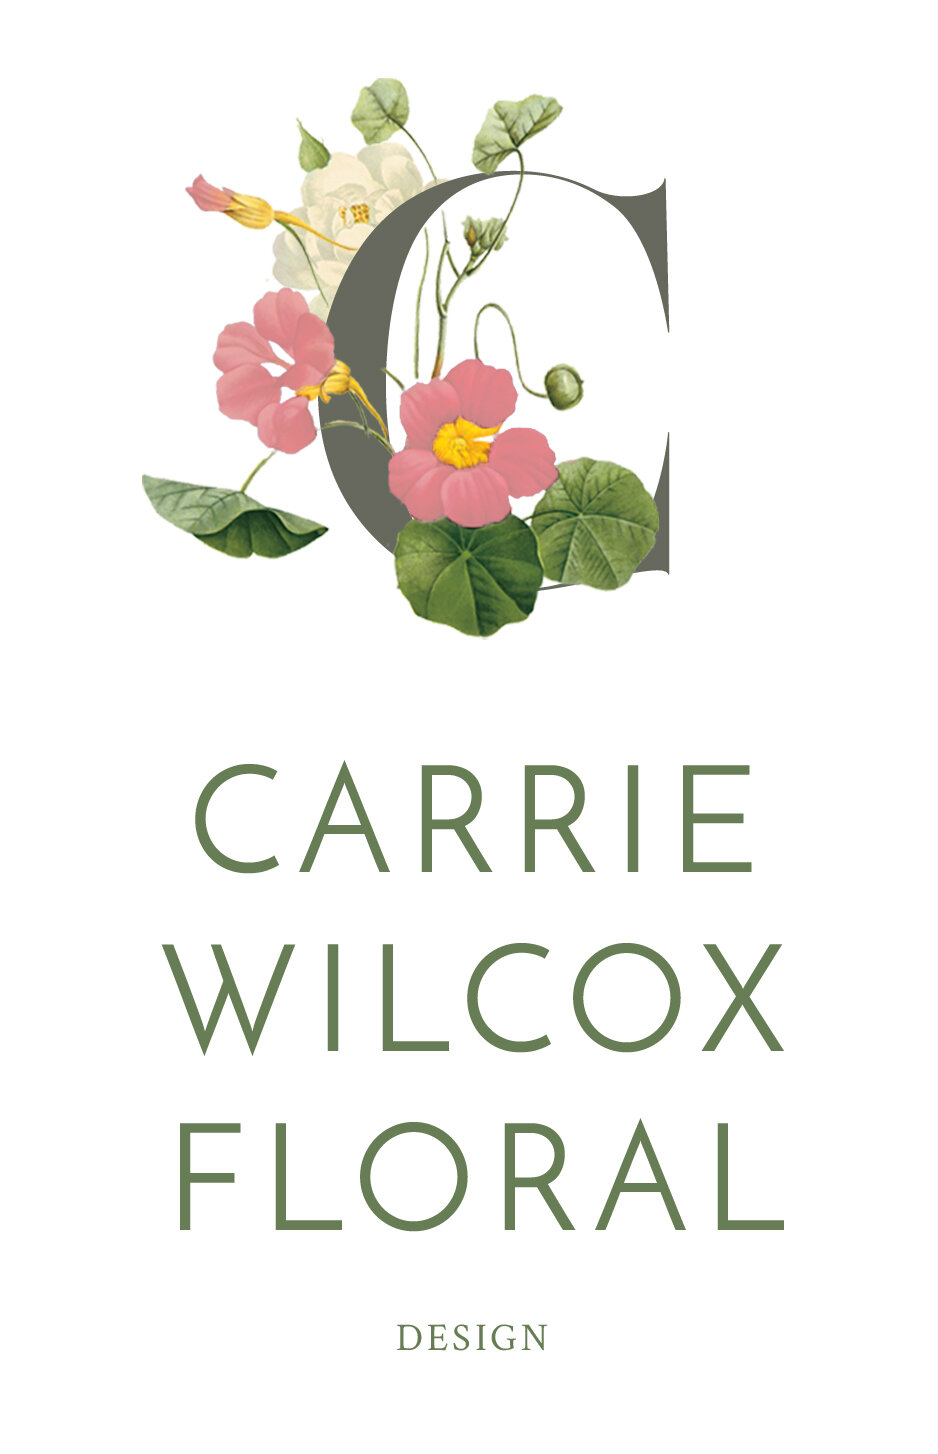 Carrie Wilcox Floral Design